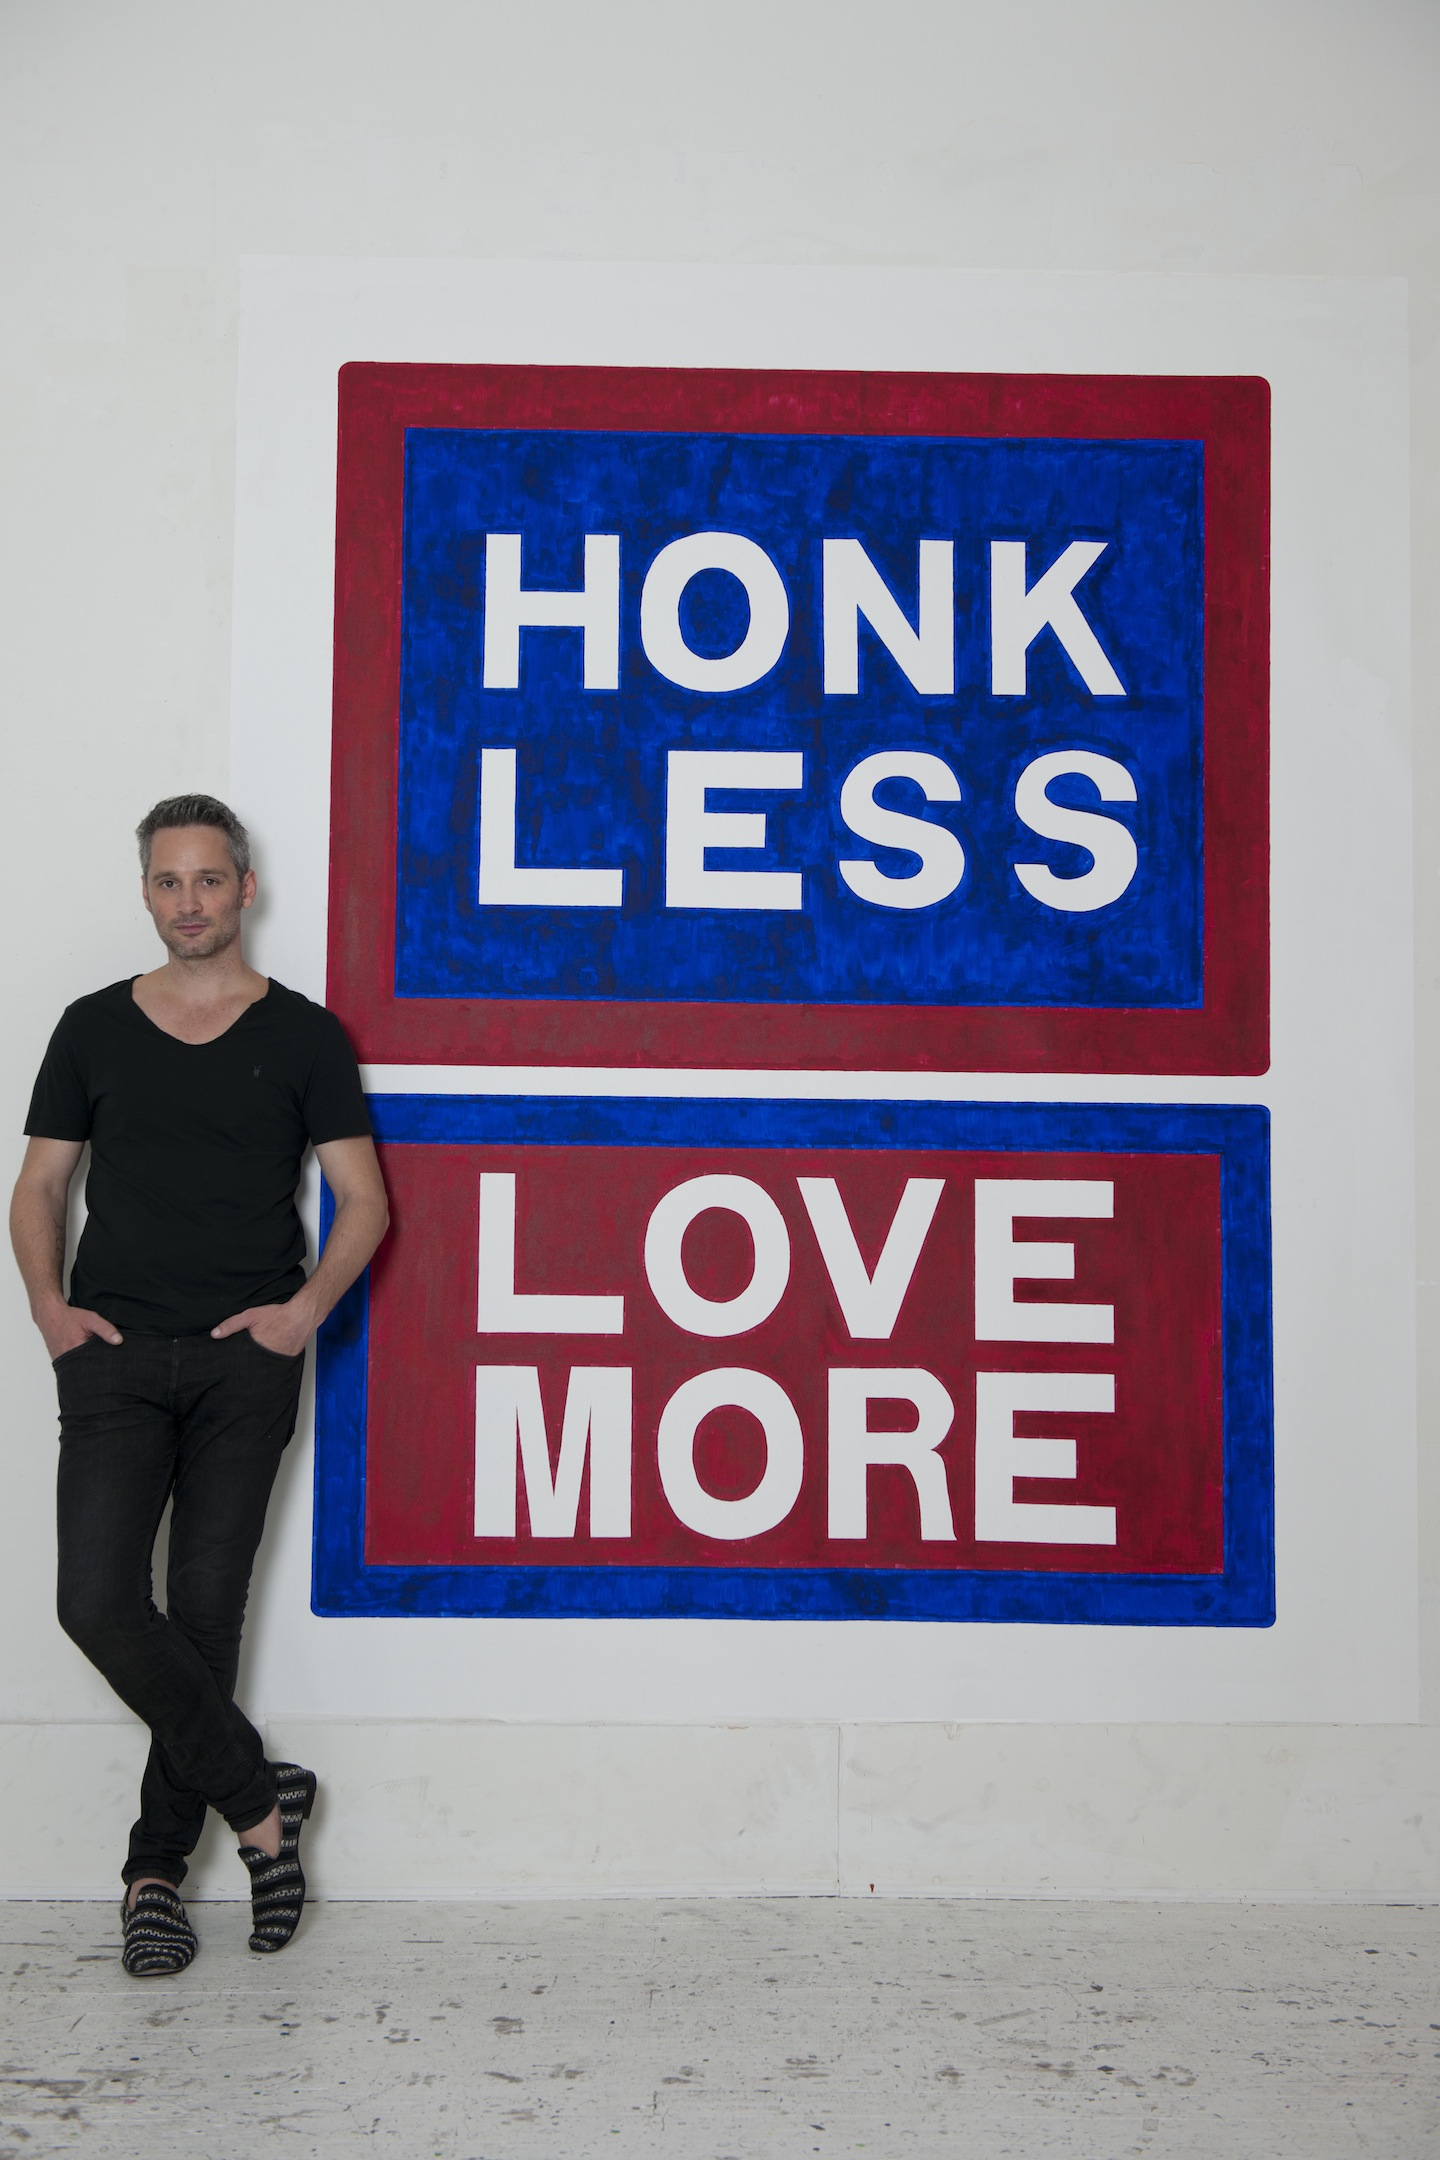 Honk Less Love More photo 2